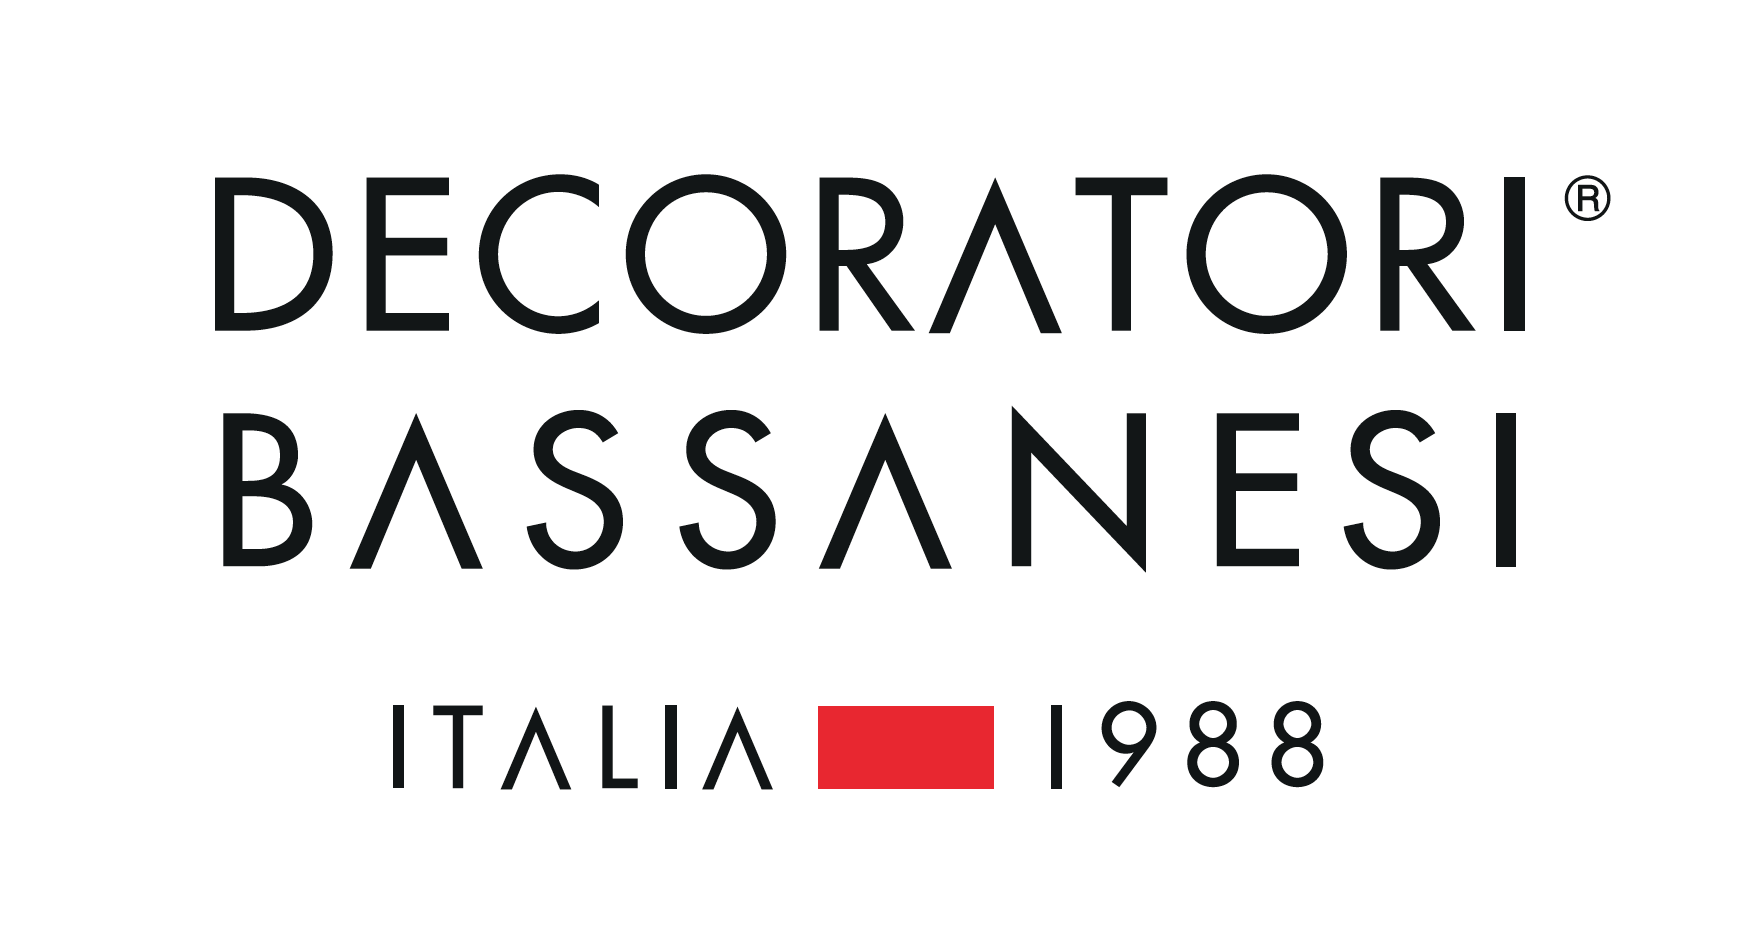 Decoratori Bassanesi